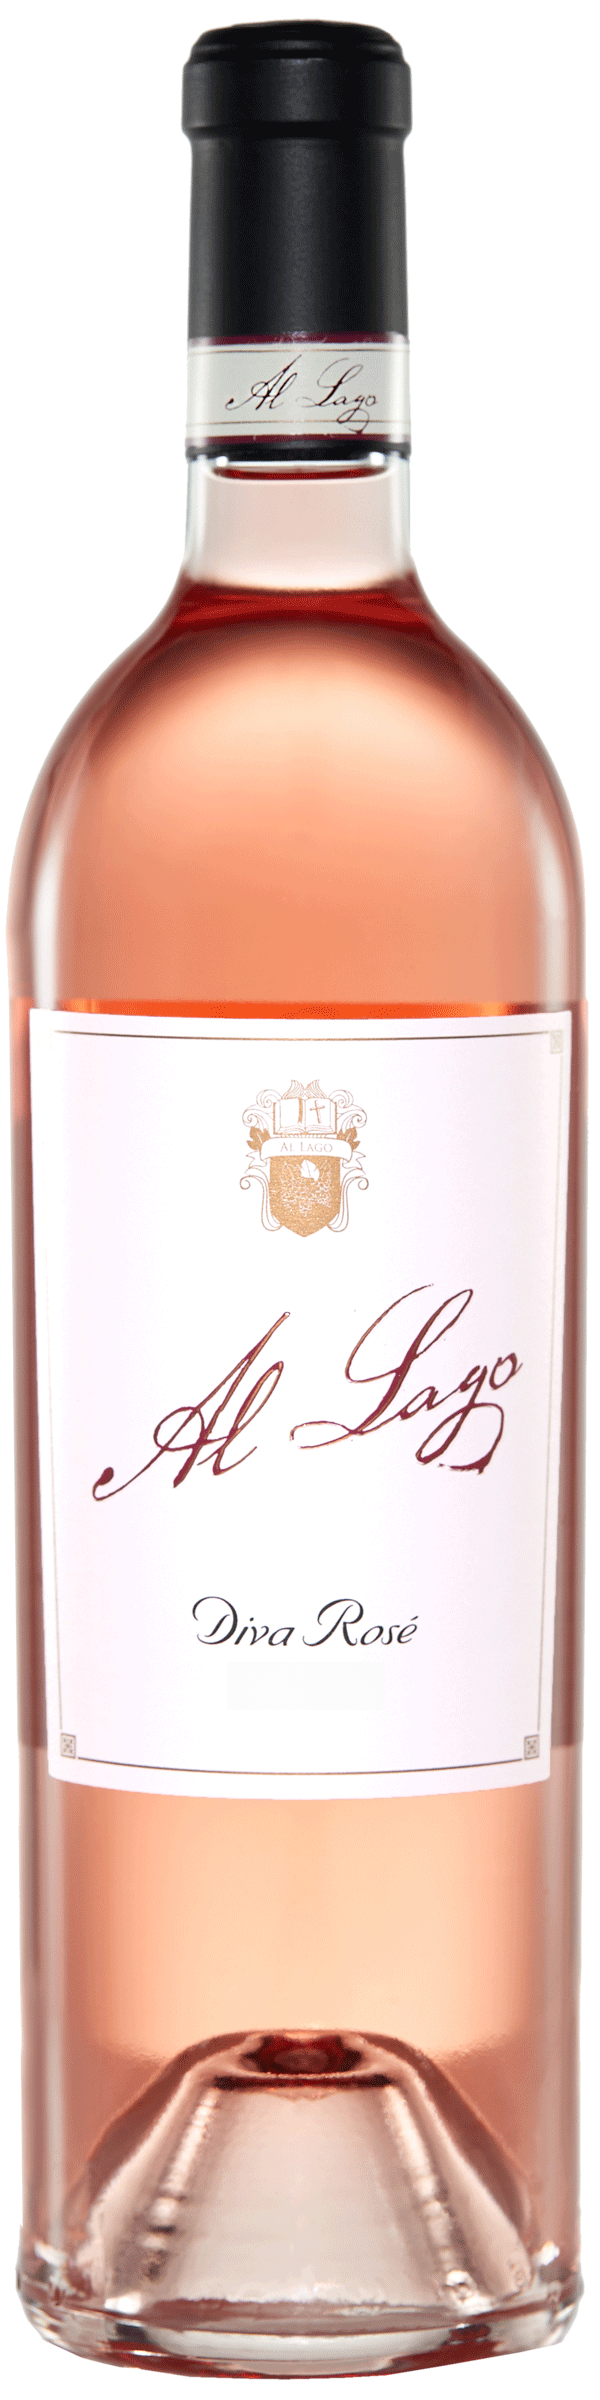 Product Image for 2018 Diva Rosé